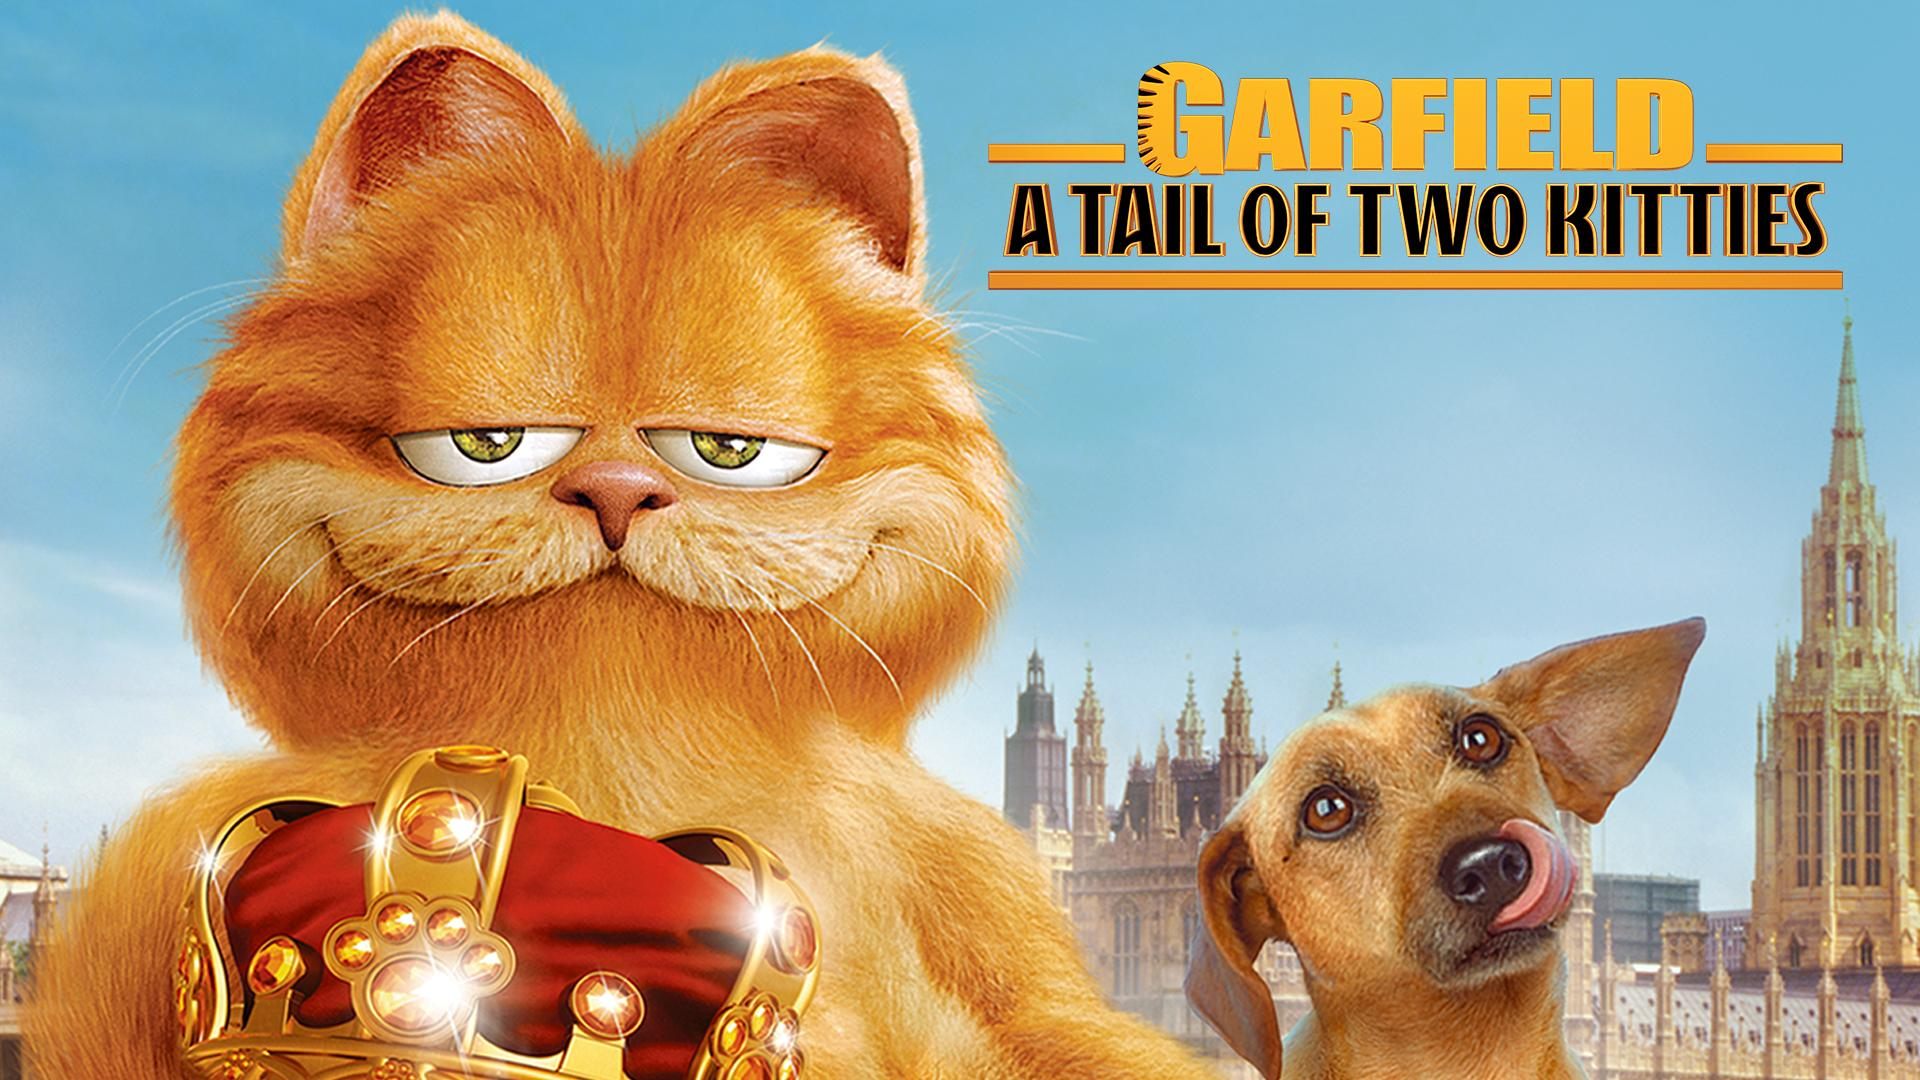 Disney On Twitter Garfield A Tail Of Two Kitties 2006